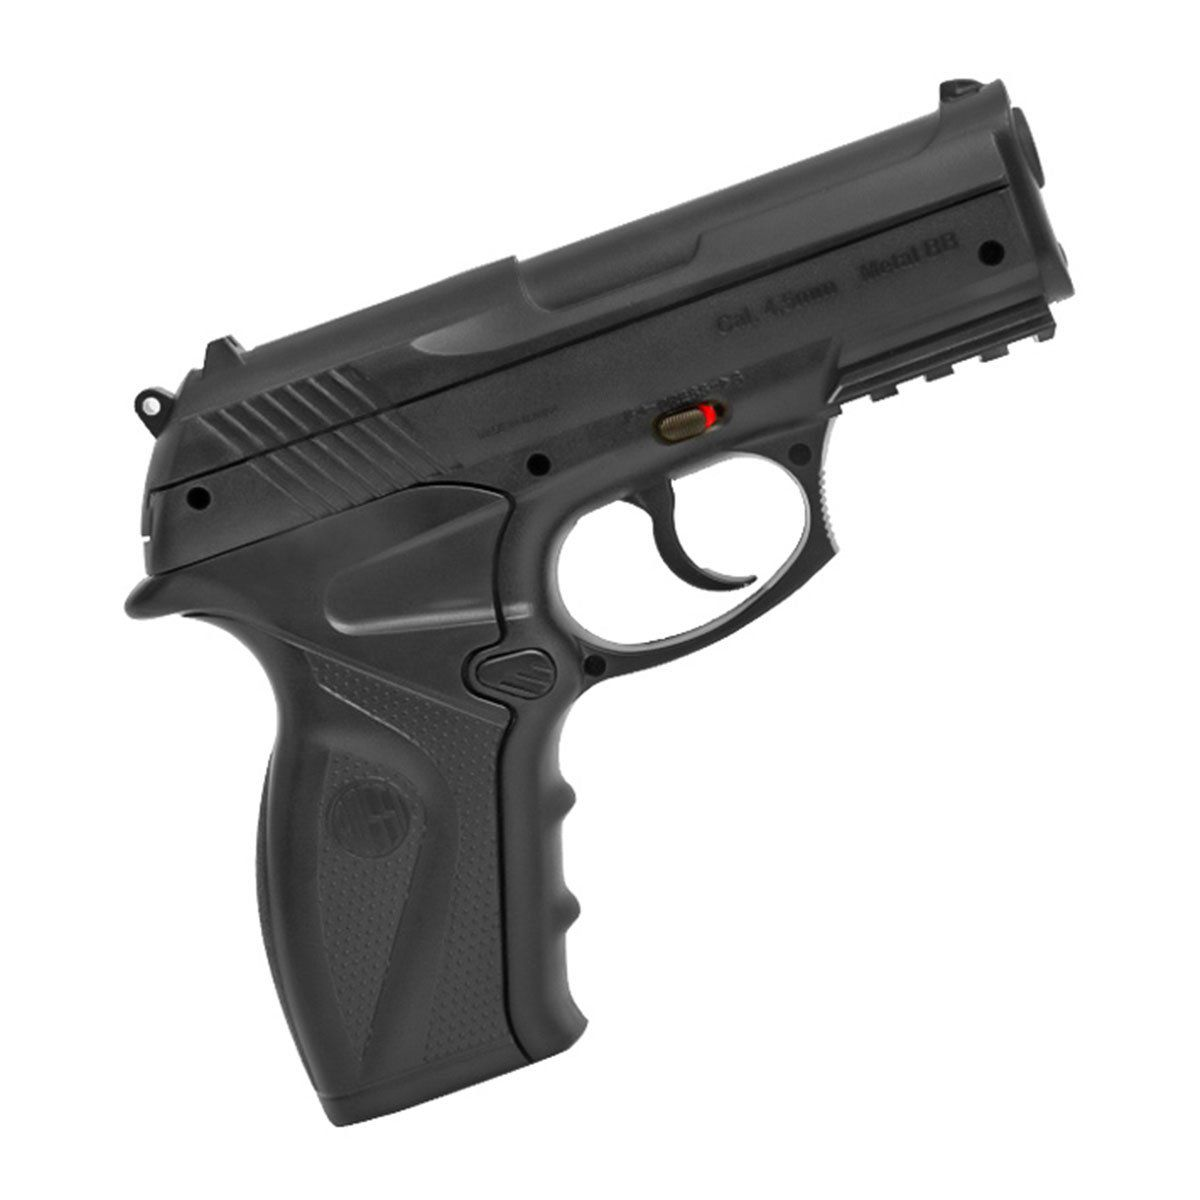 Pistola de Pressão Wingun C11 CO2 4.5mm